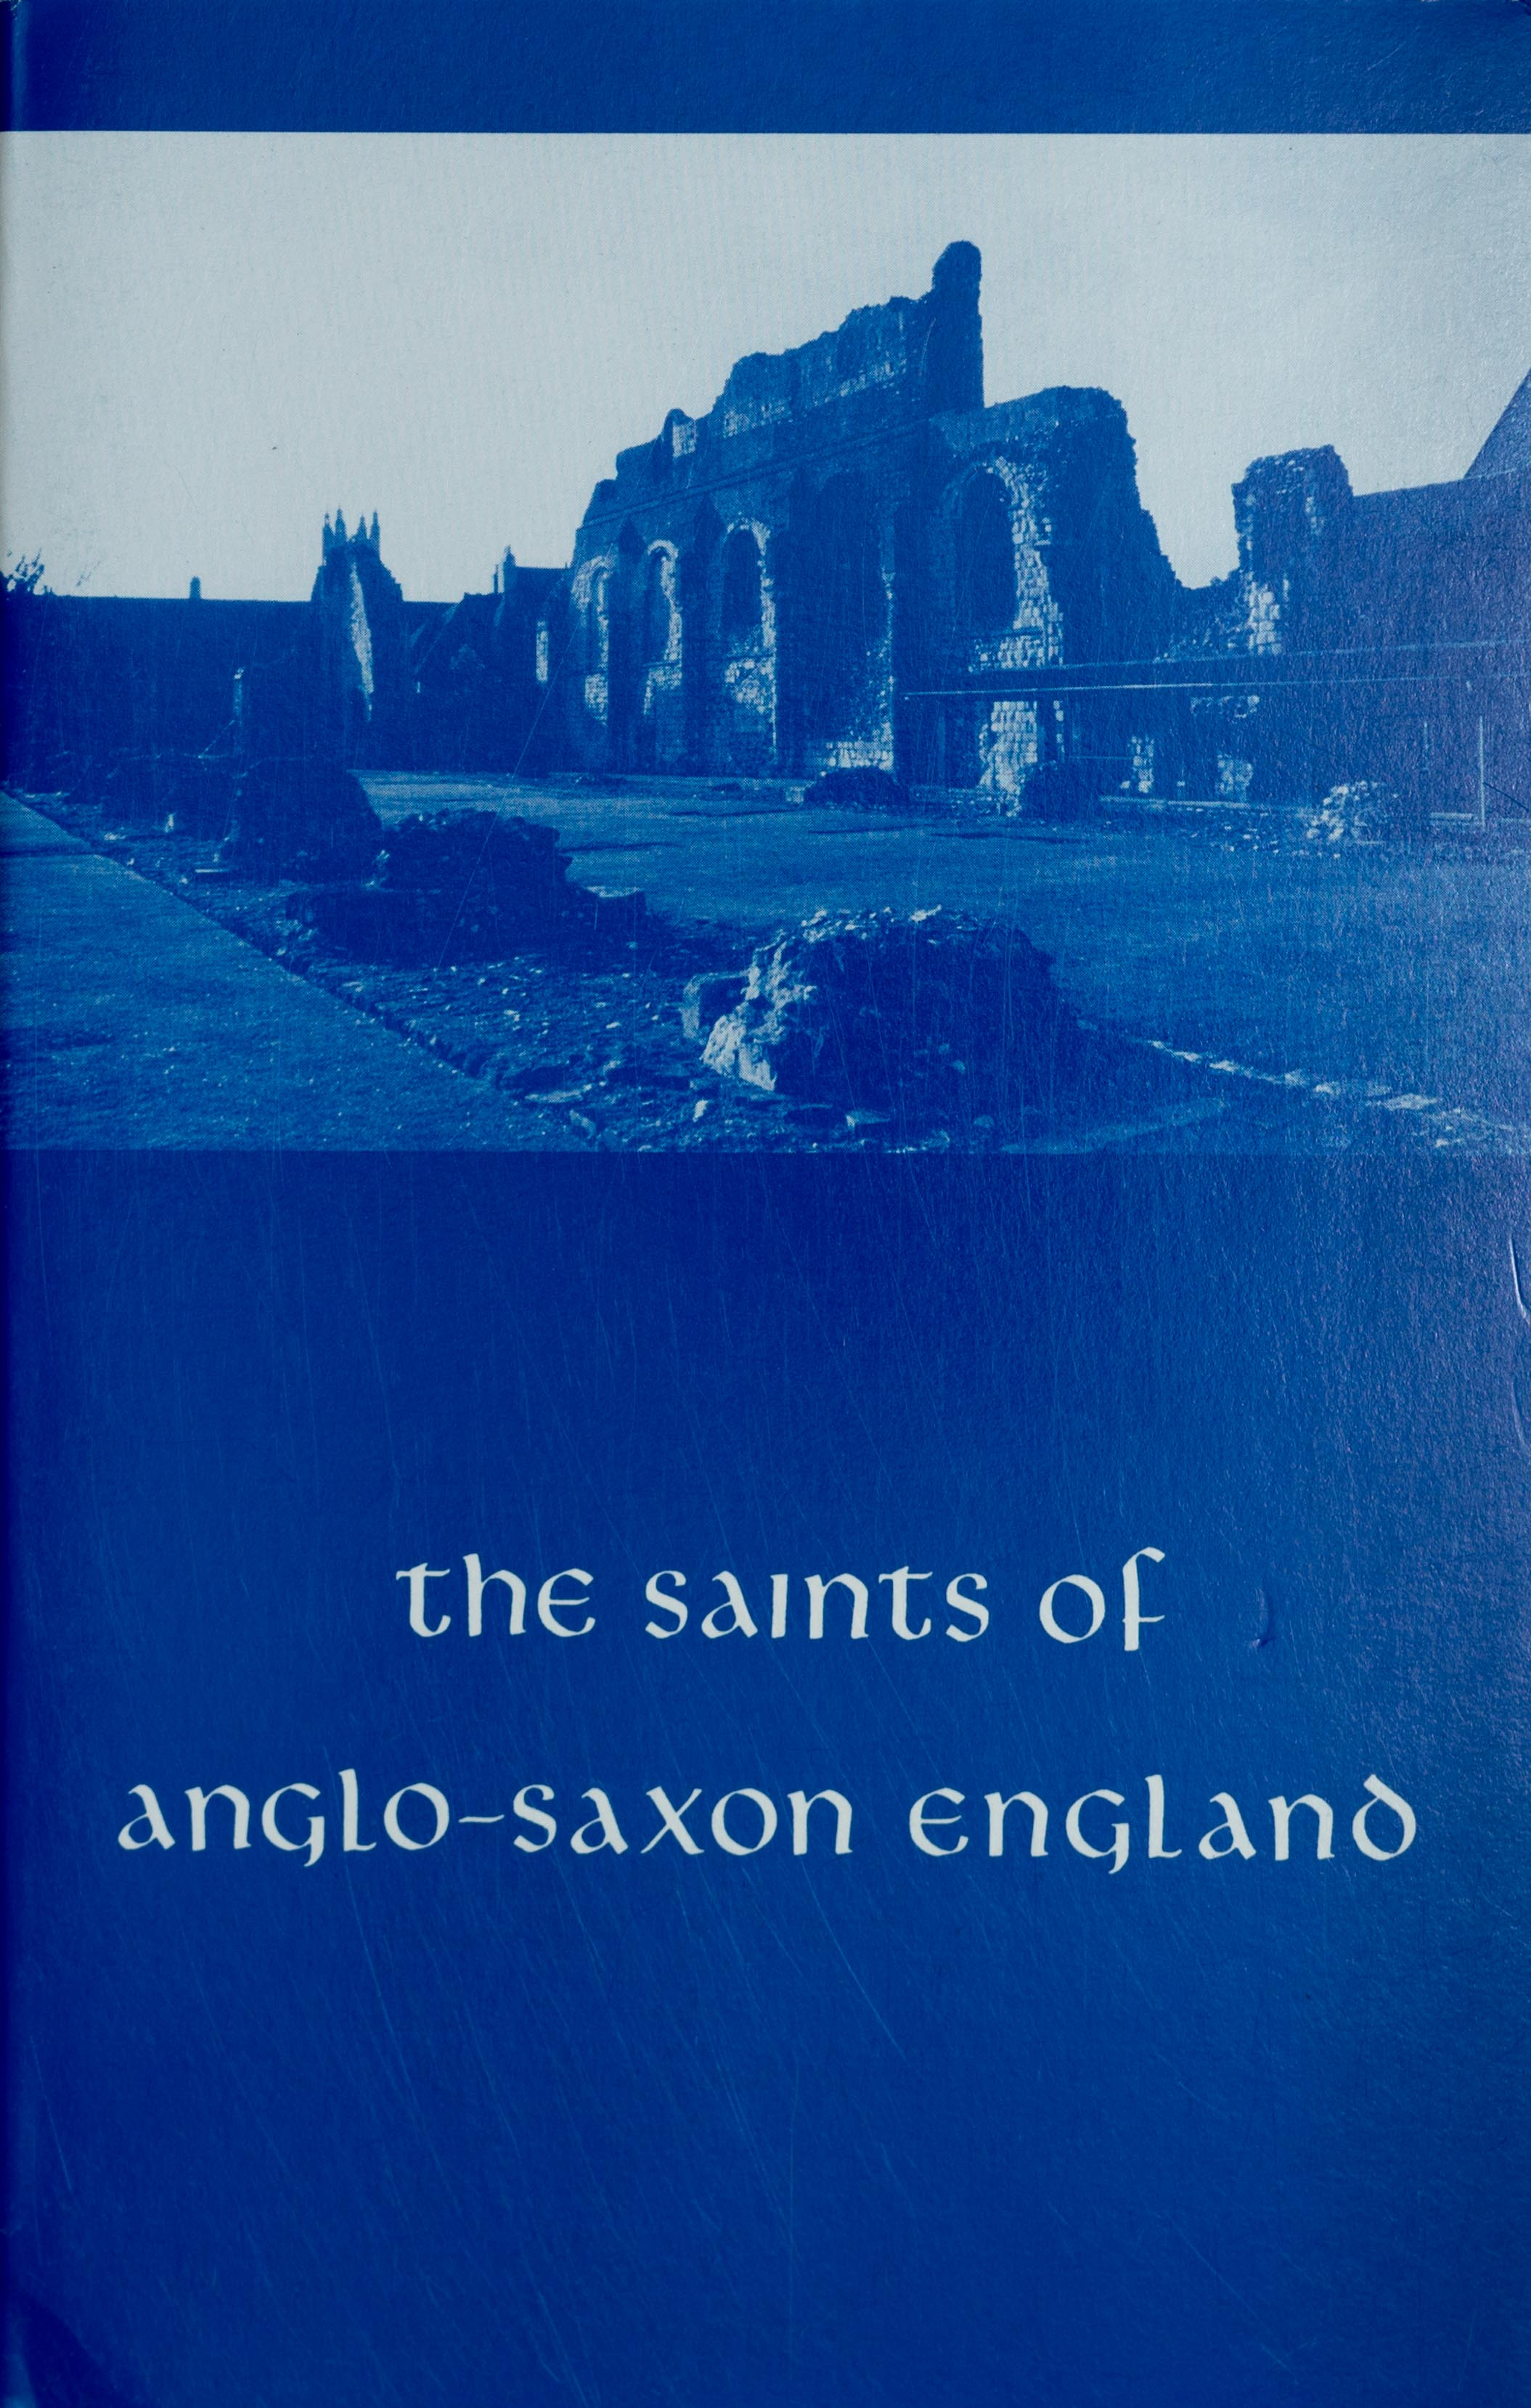 The Saints of Anglo-Saxon England Vol. 1: 9th-11th centuries